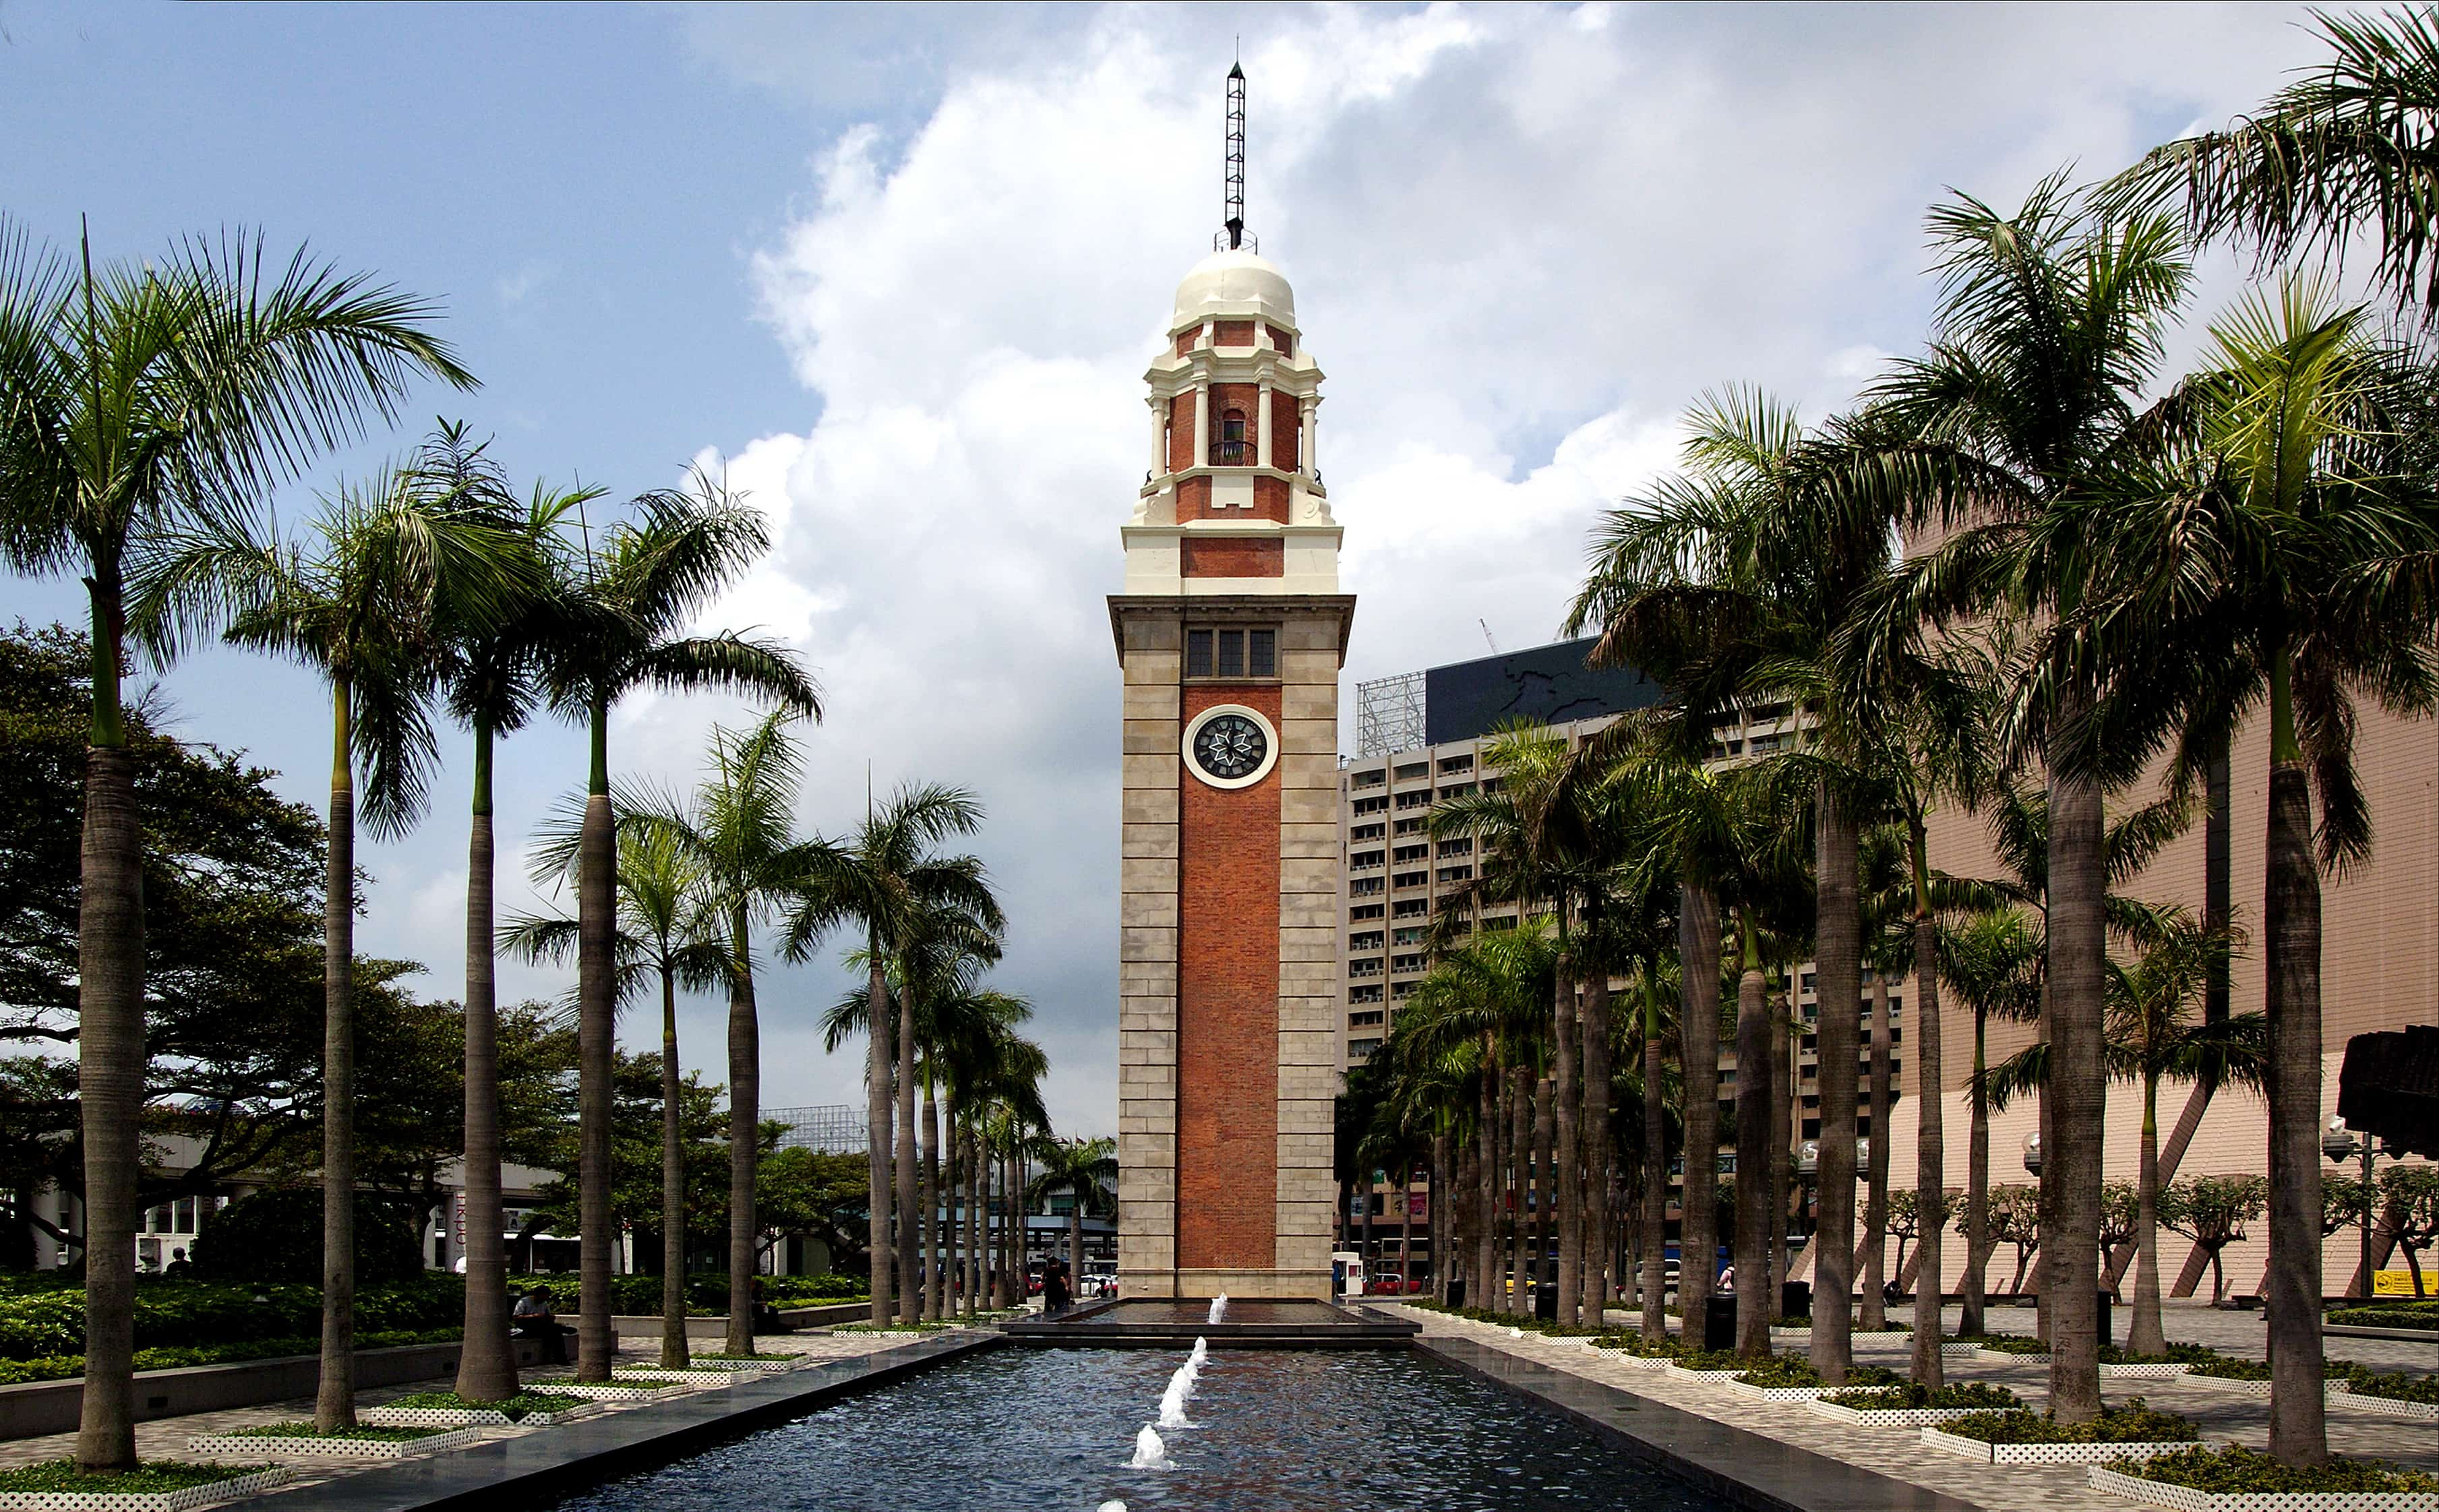 Clock Tower, Instagrammable places in Hong Kong